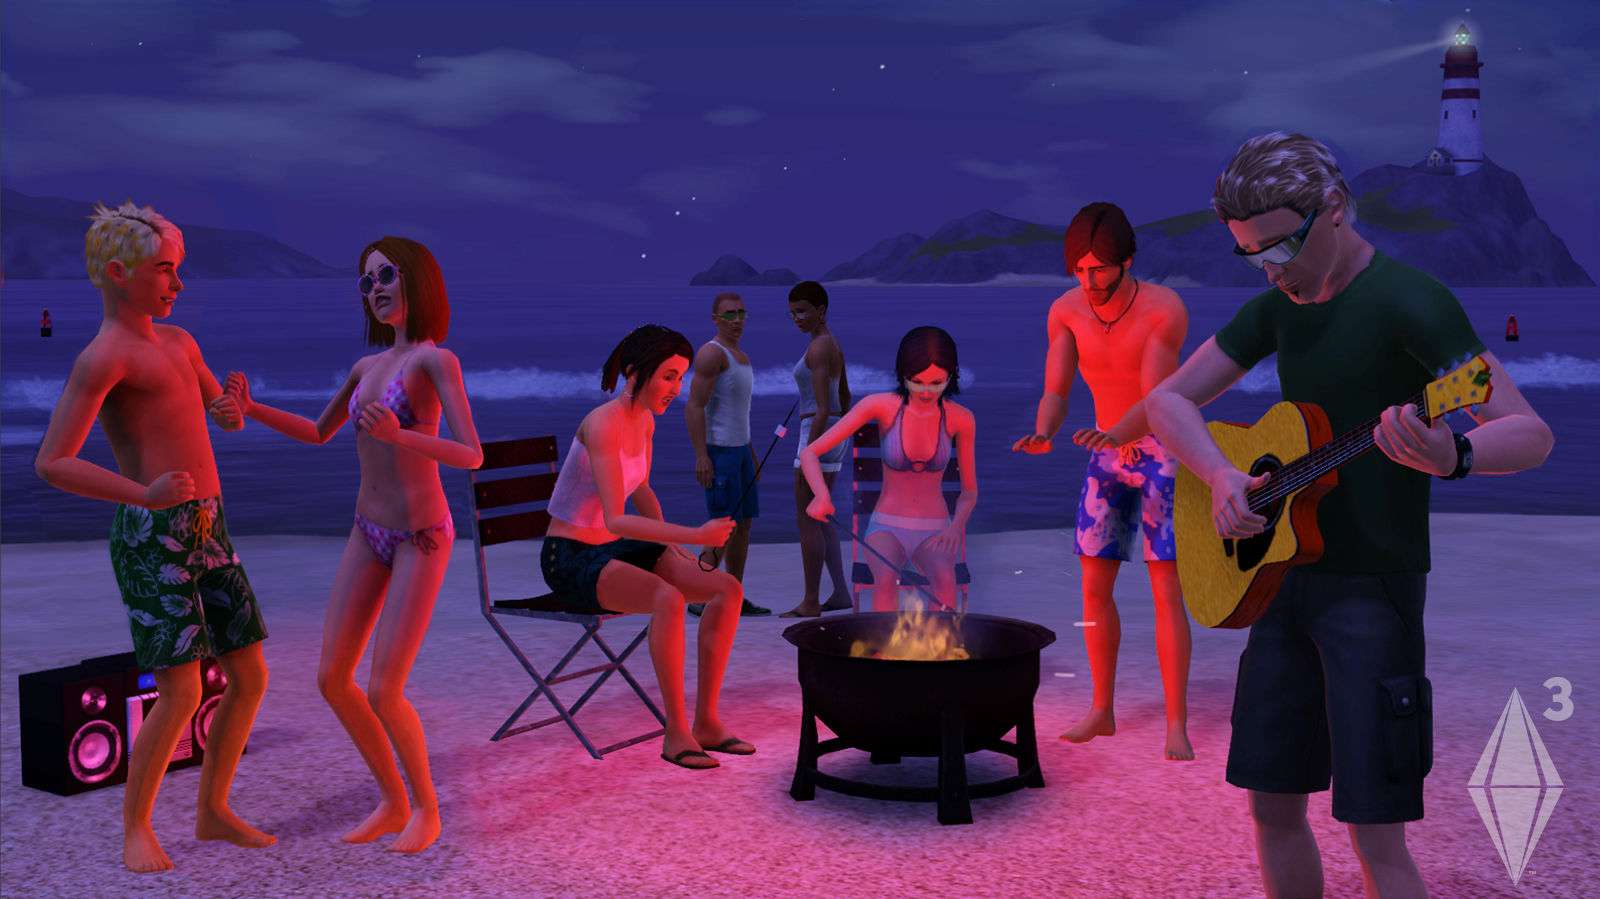 The sims 3 psp download